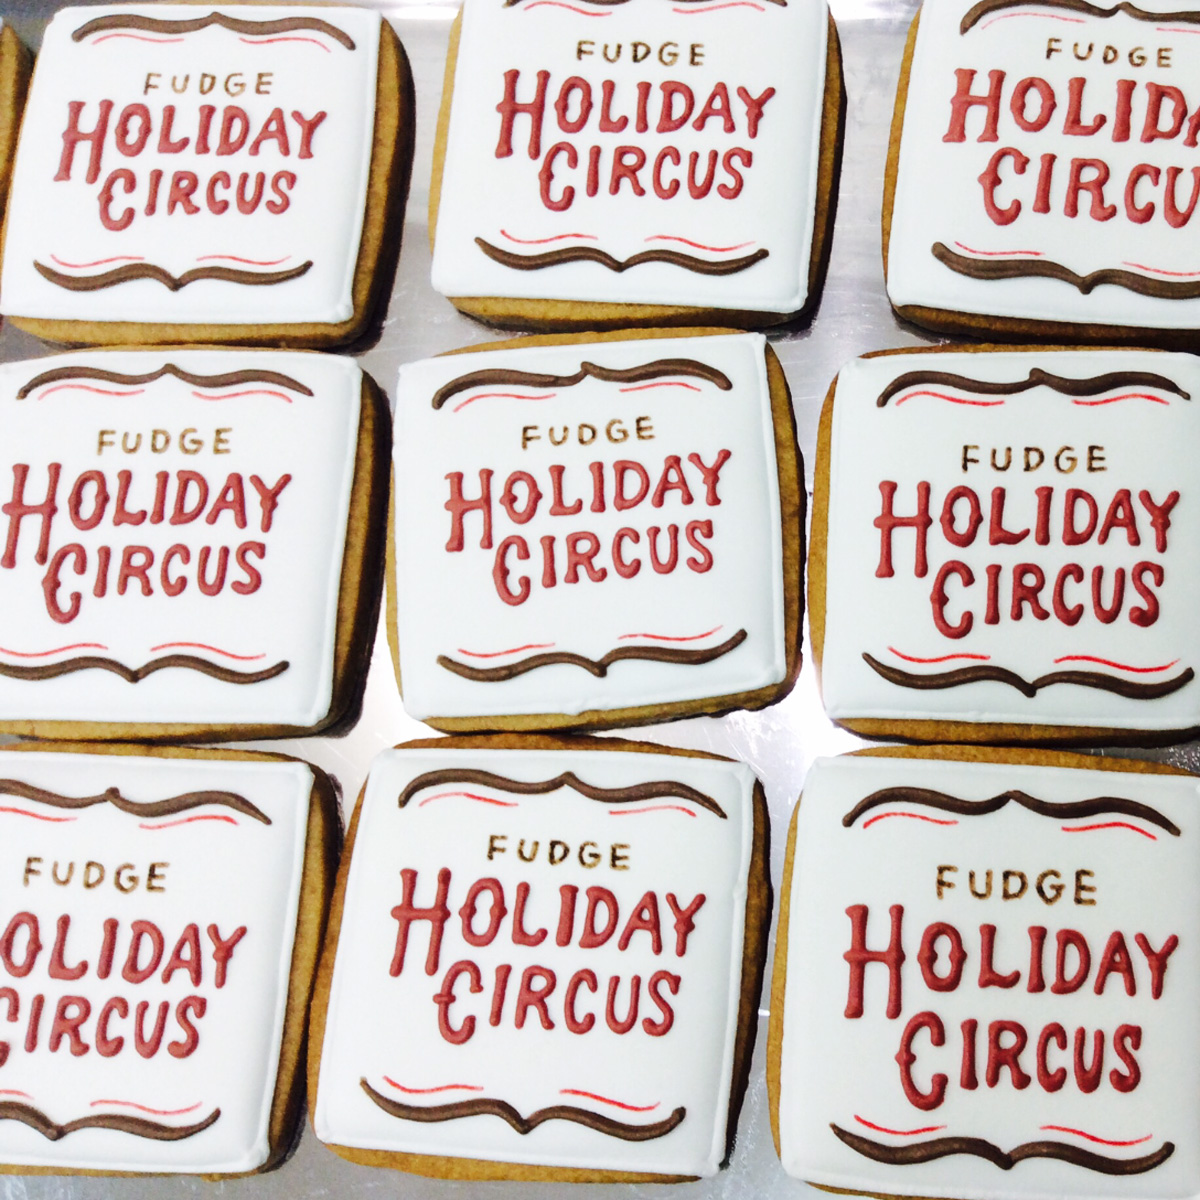 FUDGE「HOLIDAY CIRCUS」2017